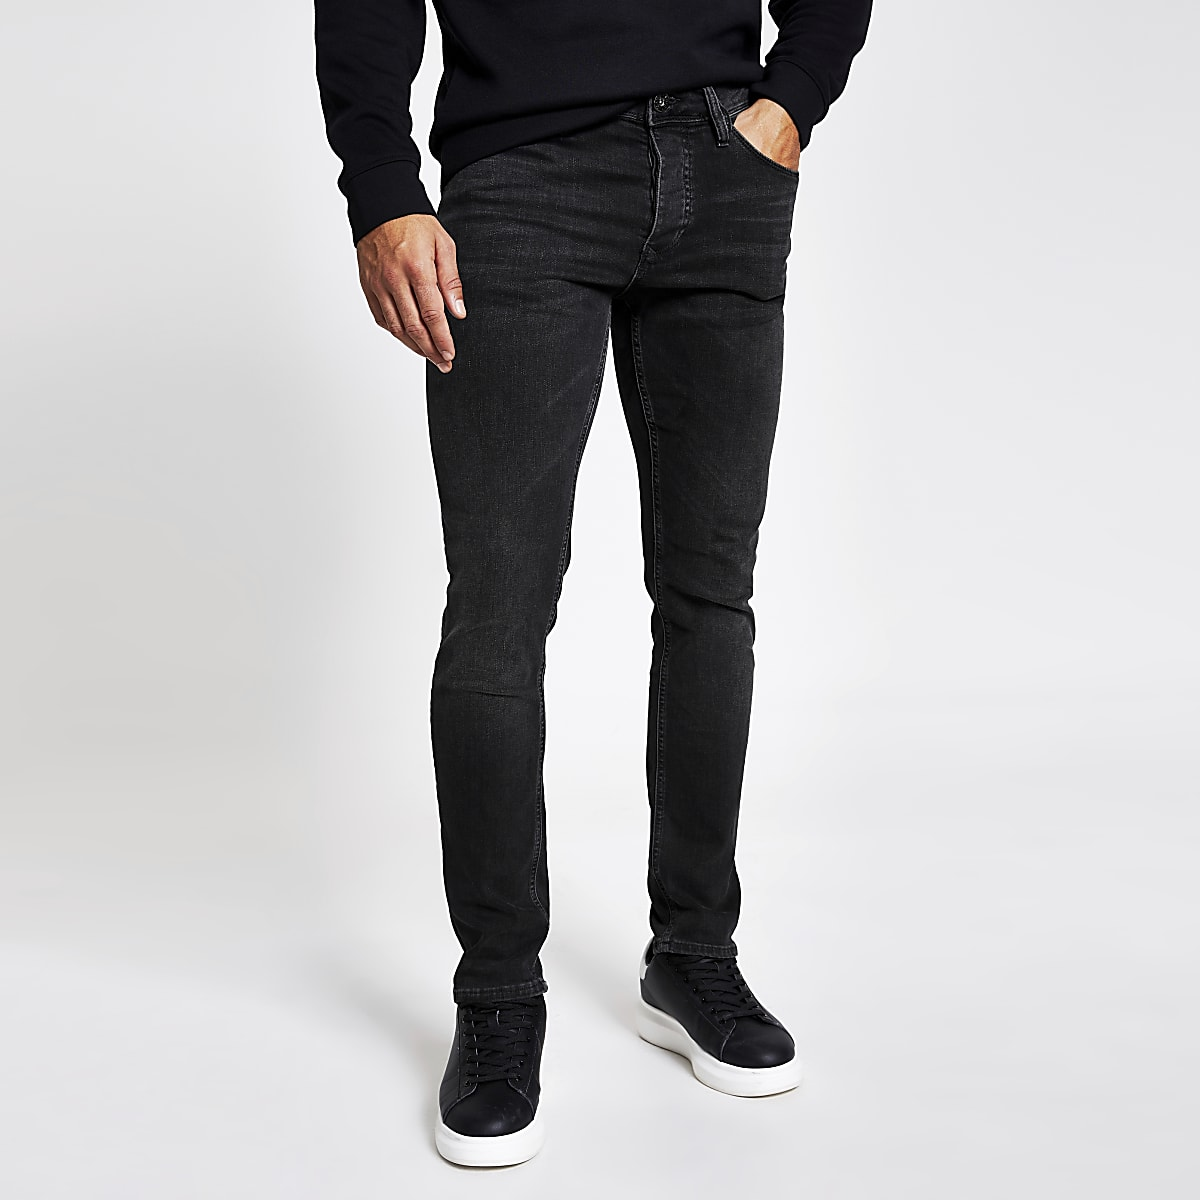 60ab4360 Black fade detail Dylan slim fit jeans - Slim Jeans - Jeans - men